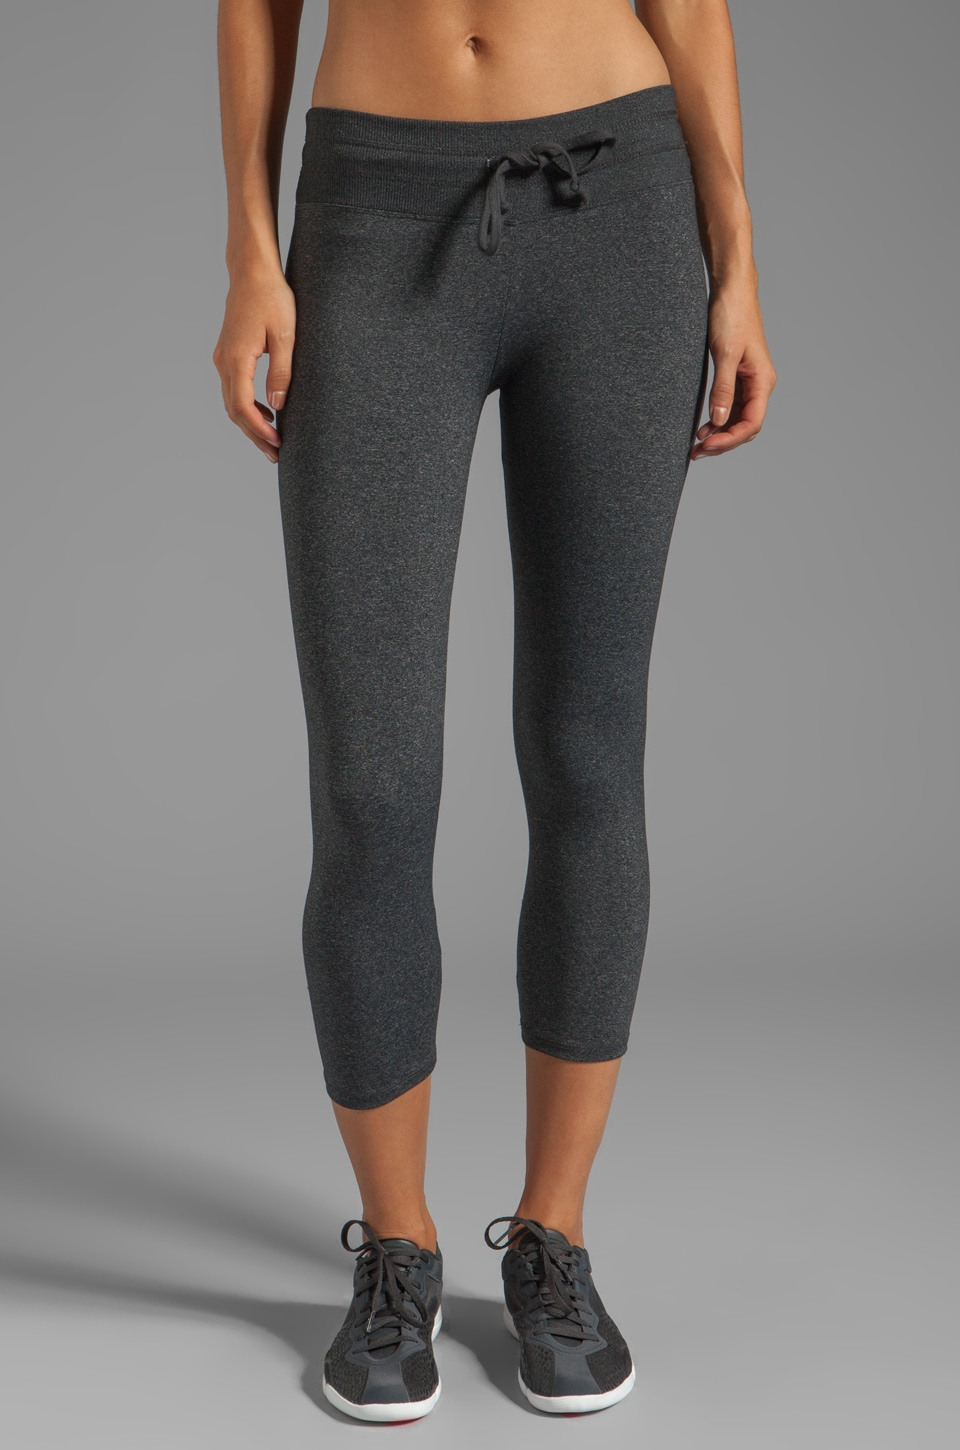 SOLOW Eclon Drawstring Crop Pant in Heather Charcoal